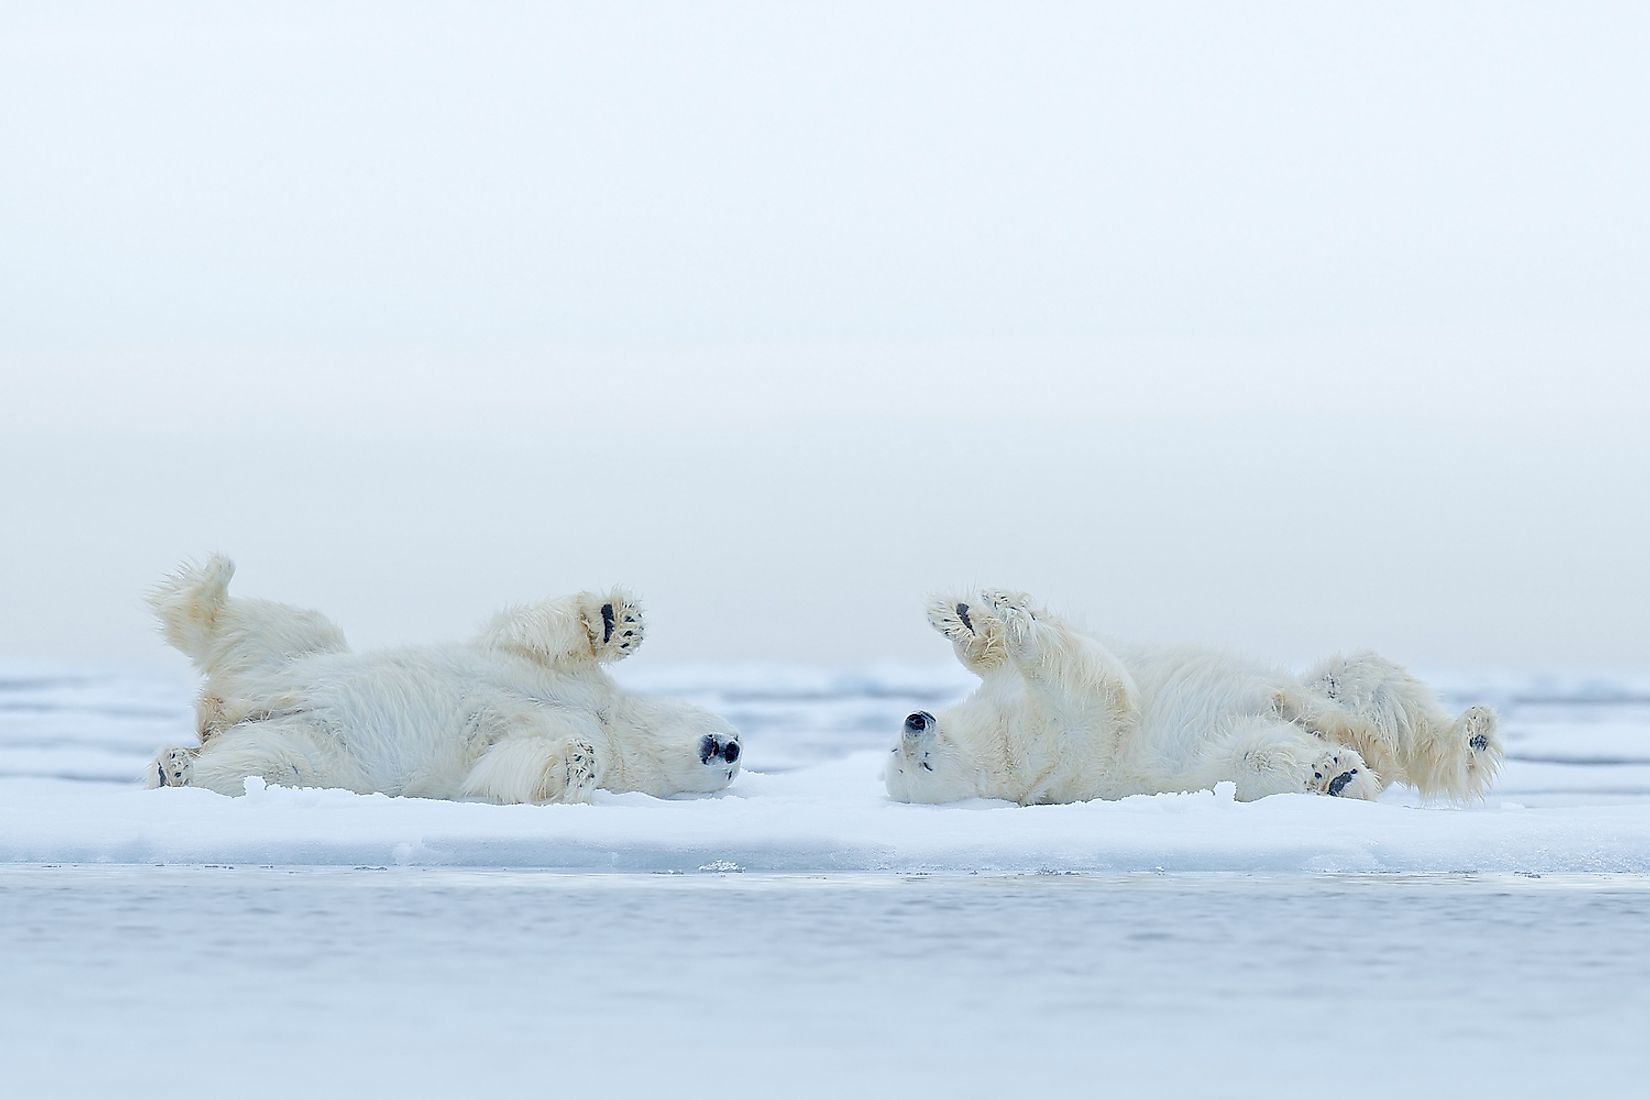 Two playful polar bears on Arctic ice. Image credit: Ondrej Prosicky/Shutterstock.com